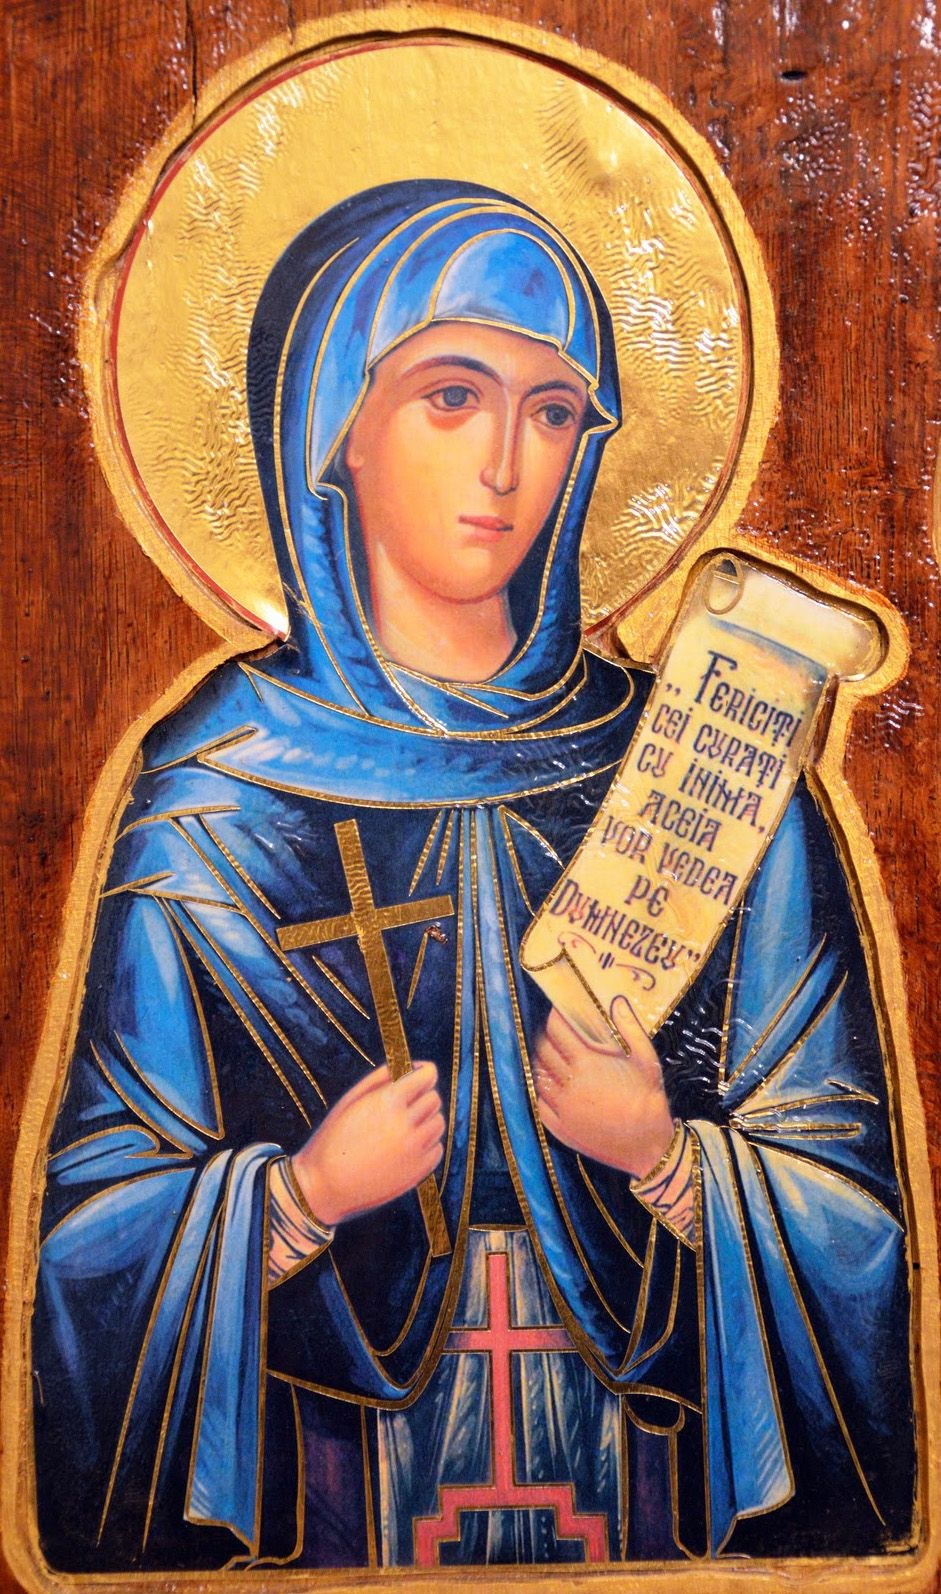 "When Saint Paraskeva the New (11th cent Serbia) heard the Lord's teaching, ""If any man will come after Me, let him deny himself,"" she gave all her clothes to the poor. She became a nun at 15 and lived in a desert for 10 years, until an angel told her to return home. She died at age 27. Many miracles occurred near her grave, and her relics were uncovered incorrupt. Since the 17th century they reside in the Three Hierarchs Cathedral in Iasi, Romania."